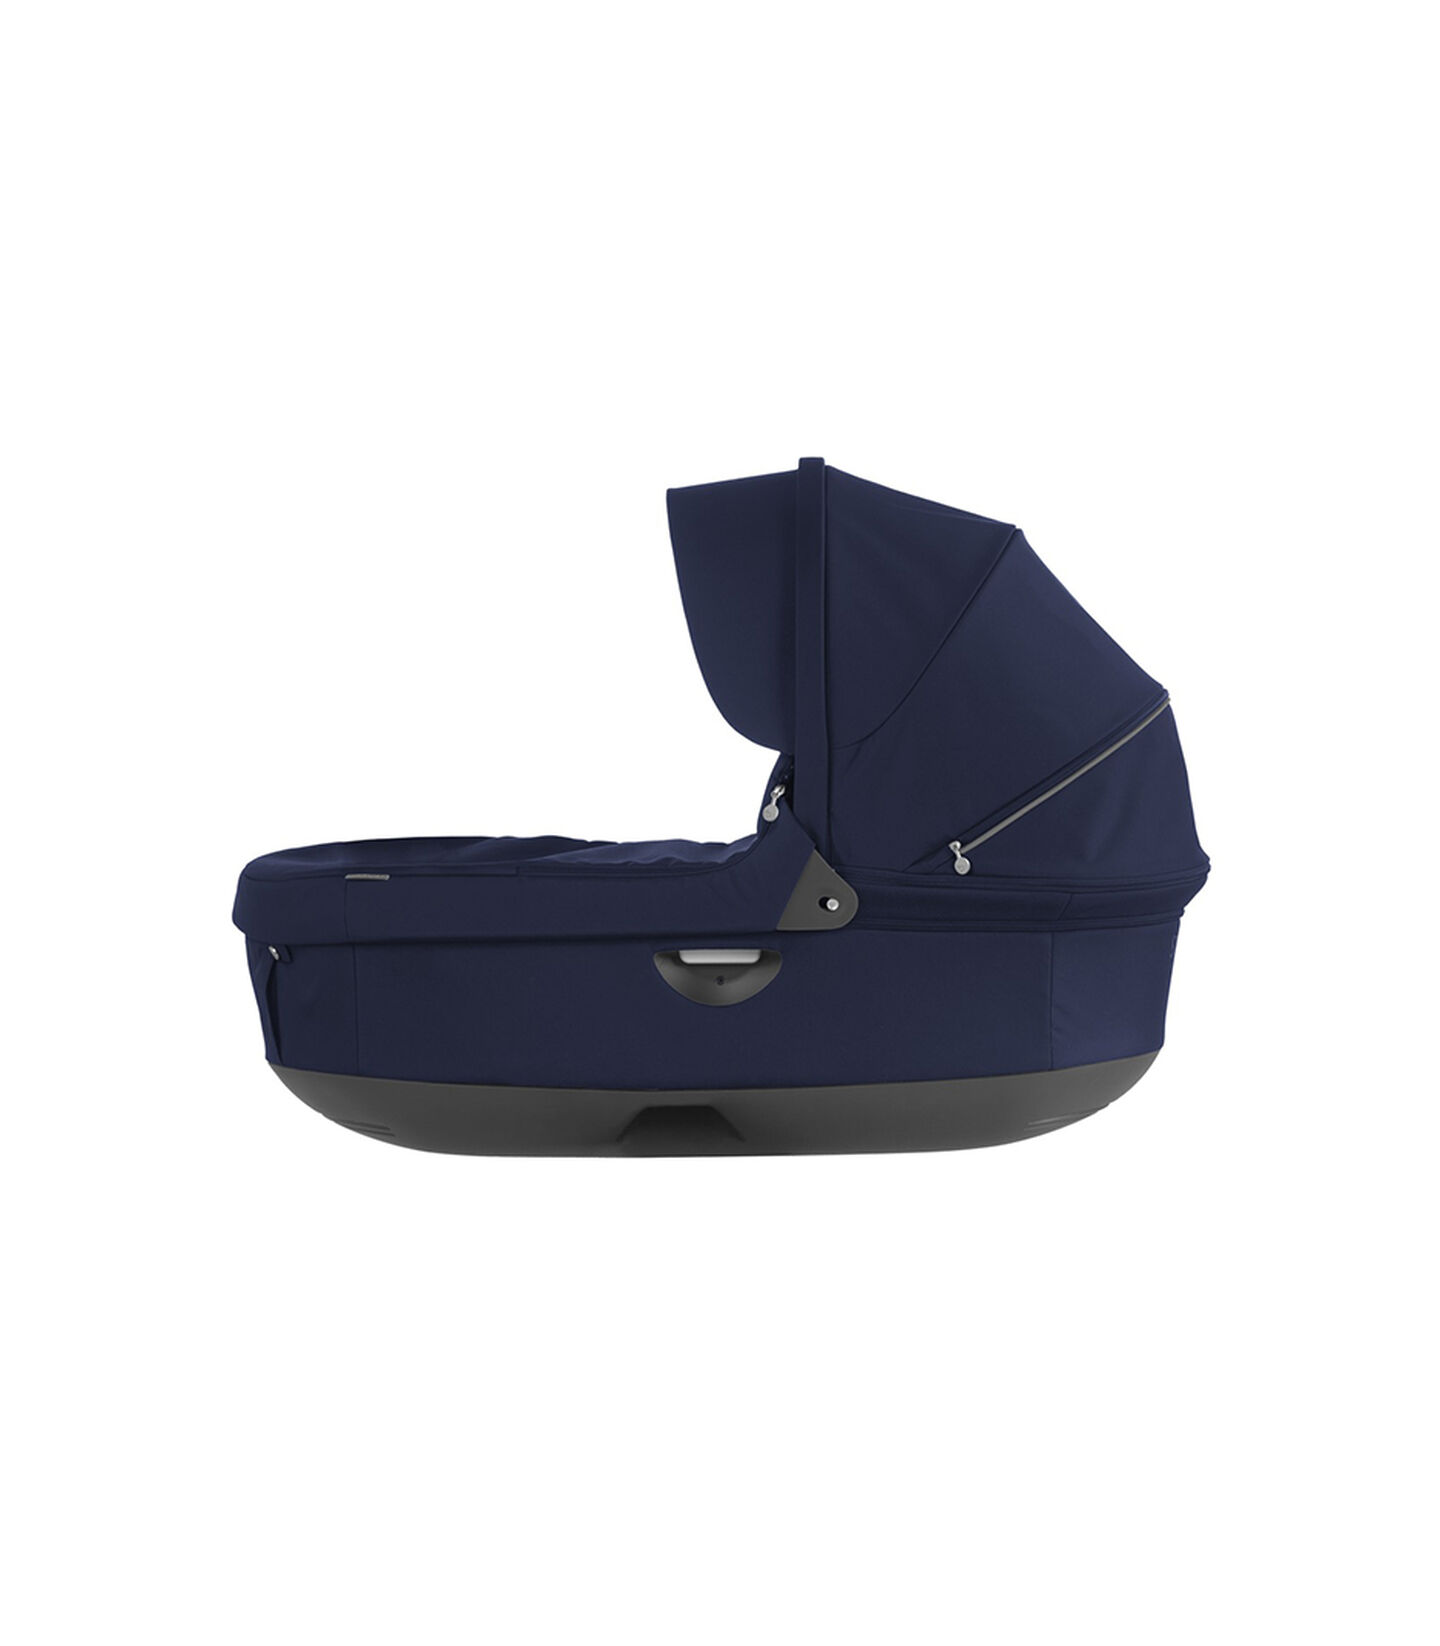 Stokke® Stroller Carry Cot. Deep Blue. (Canopy not included).